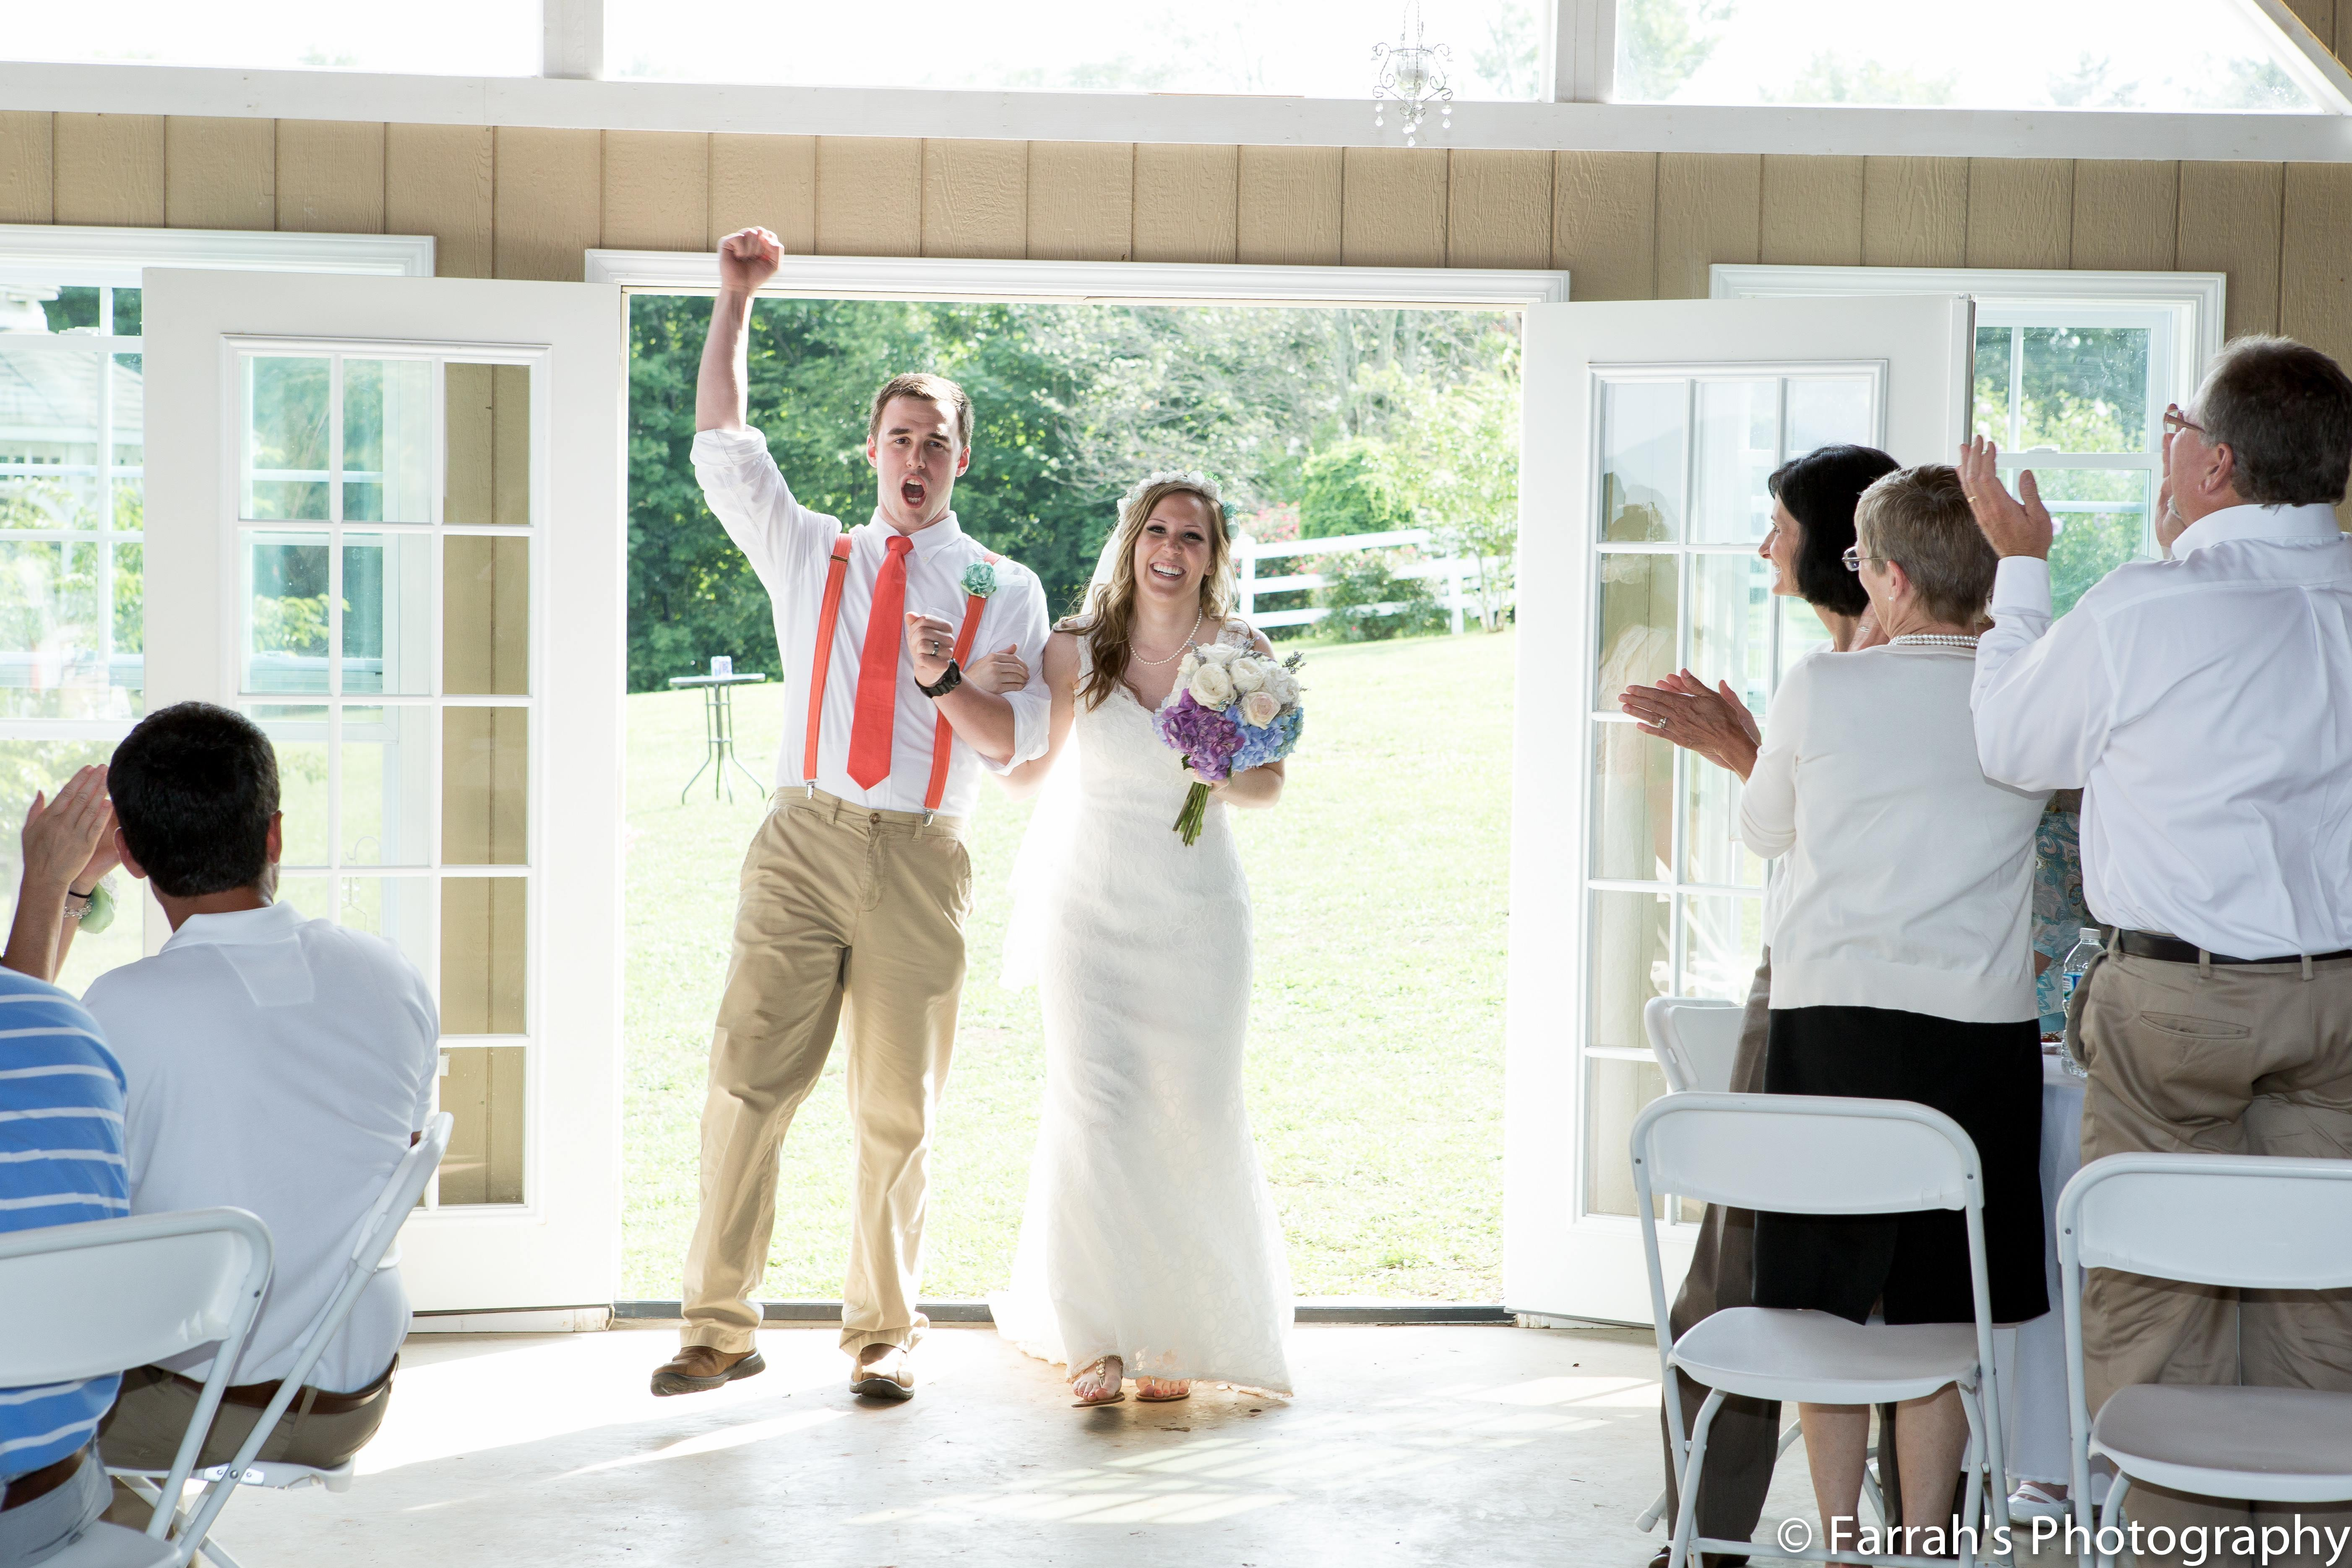 Knoxville Wedding DJ FAQ: What Do Your Announcements Sound Like?